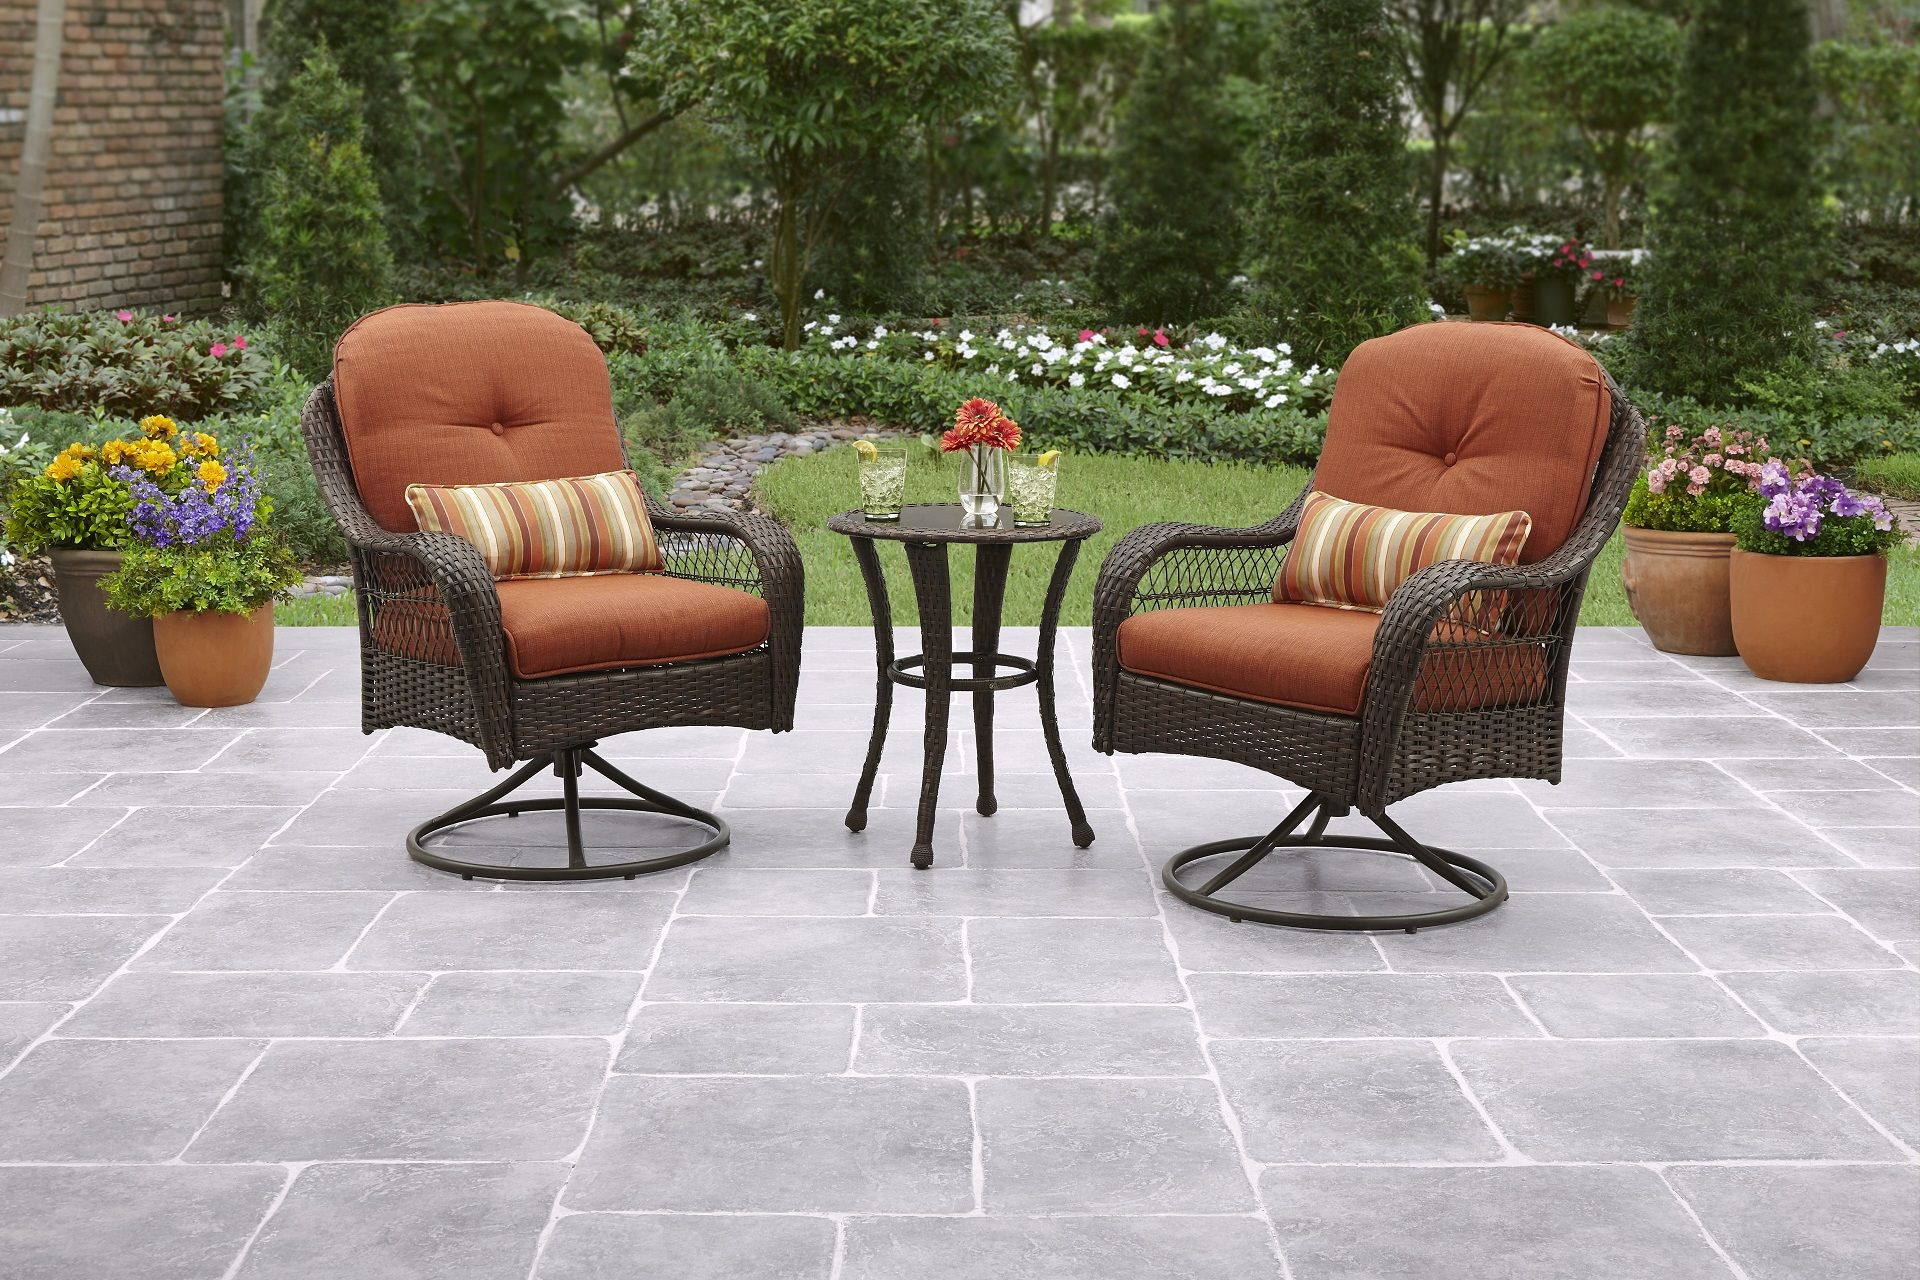 Better Homes And Gardens Colebrook Outdoor Sofa Seats 3